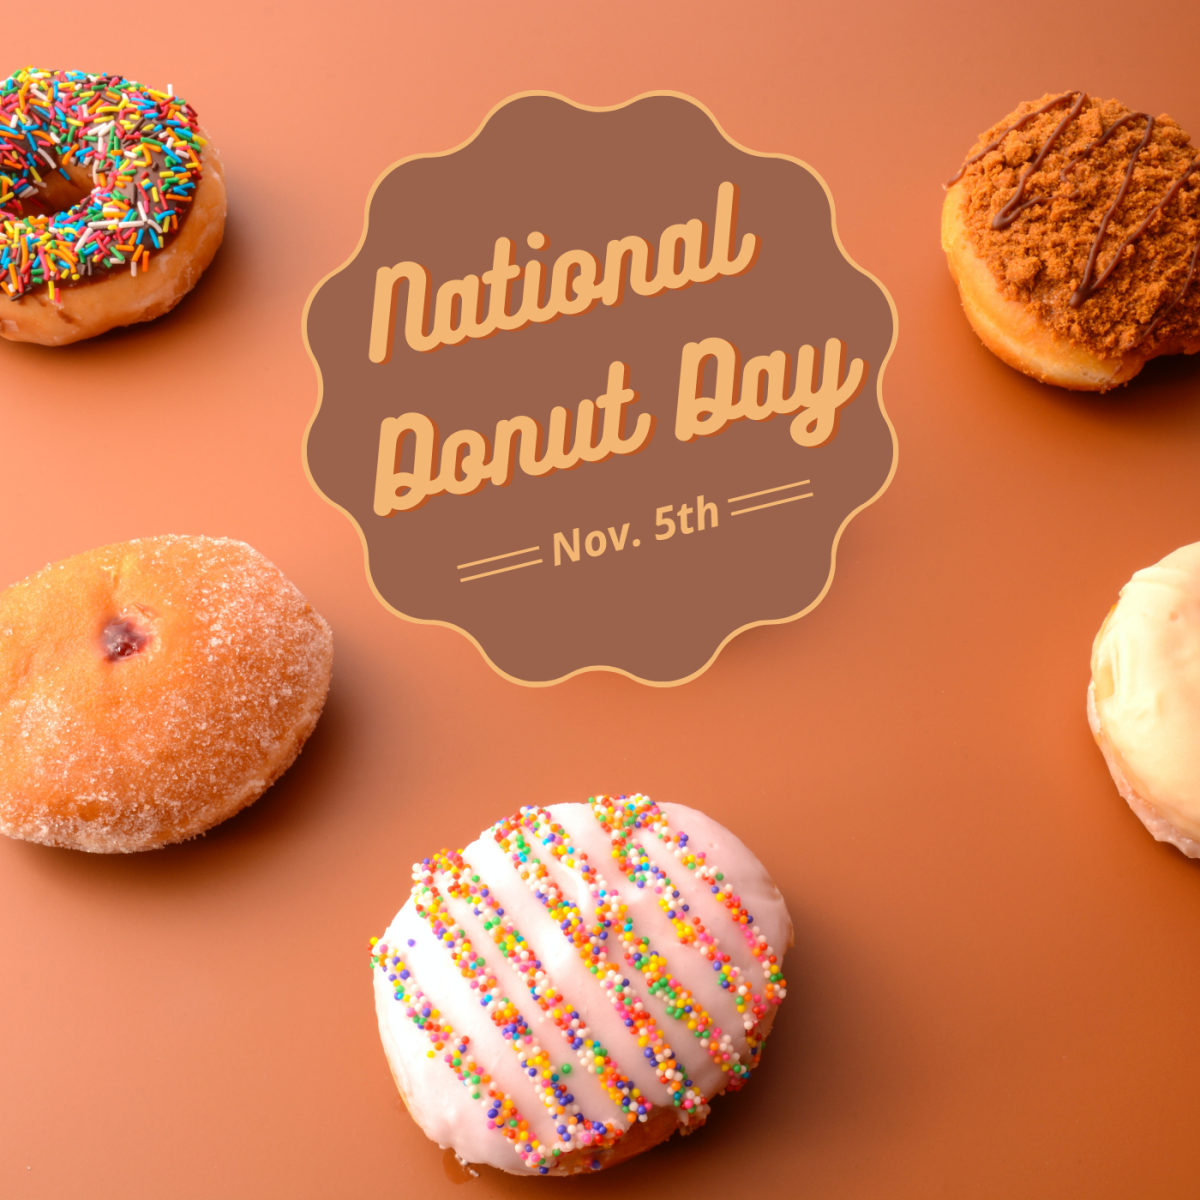 National Donut Day is on November 5th. How will you celebrate?